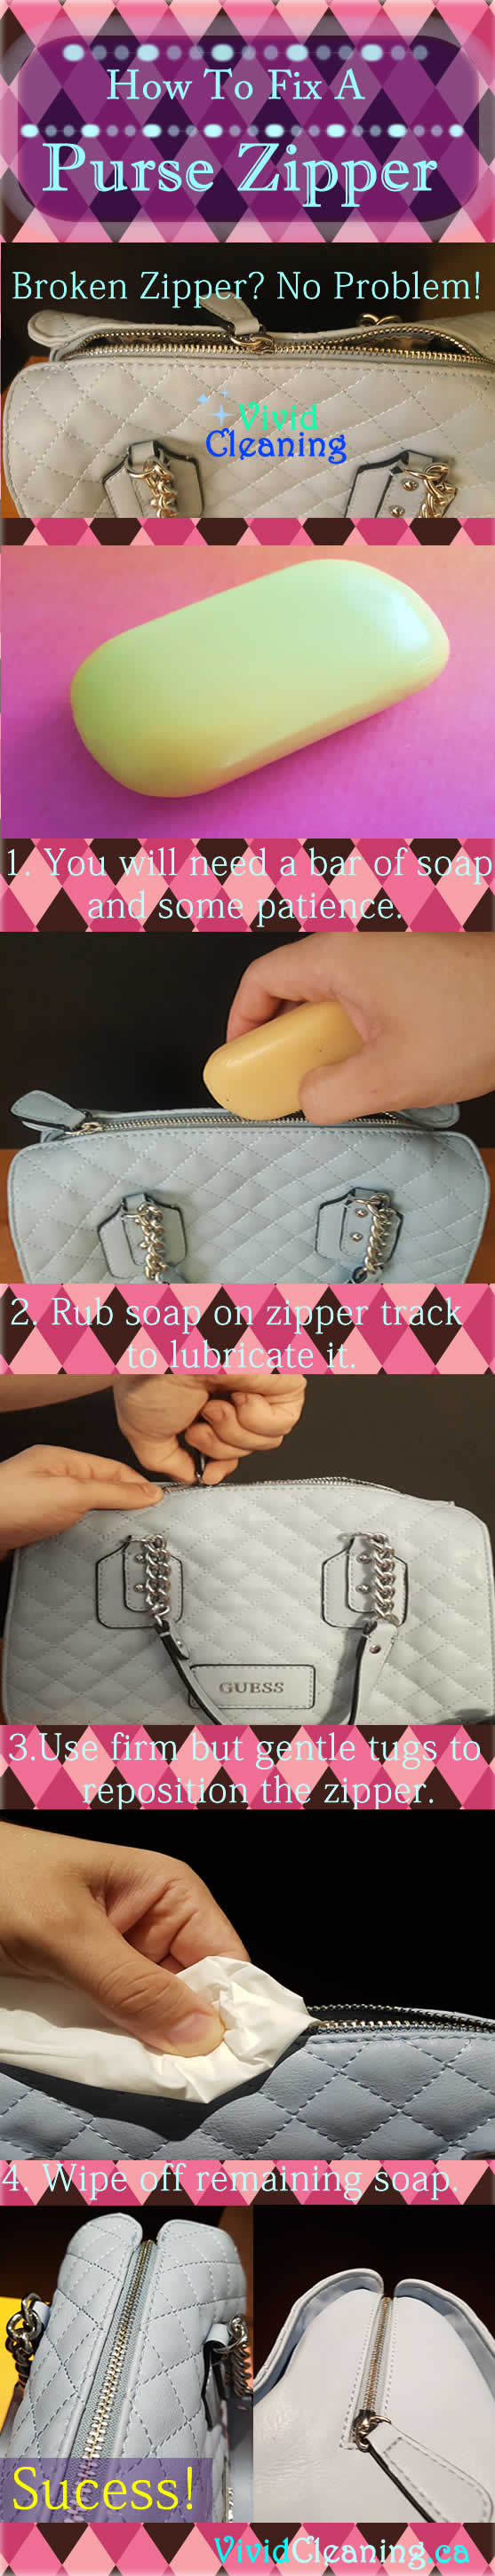 How To Fix A Purse Zipper 1. You will need a bar of soap and some patience. 2. Rub soap on zipper track to lubricate it. 3. Use firm but gentle tugs to reposition the zipper. 4. Wipe off remaining soap.